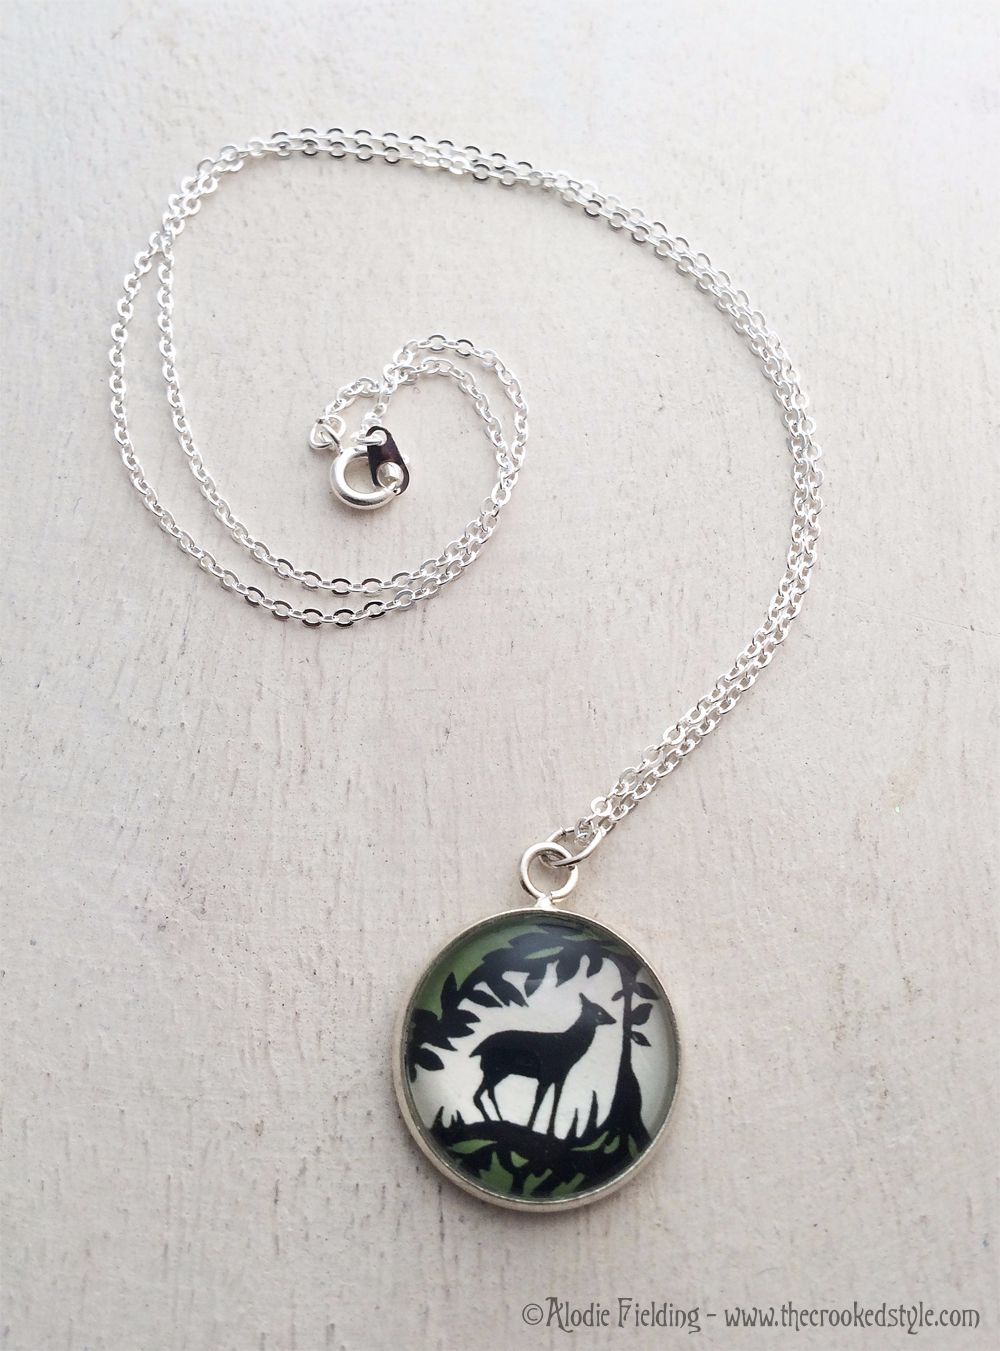 FOREST DEER 20mm SILVER PLATED PENDANT